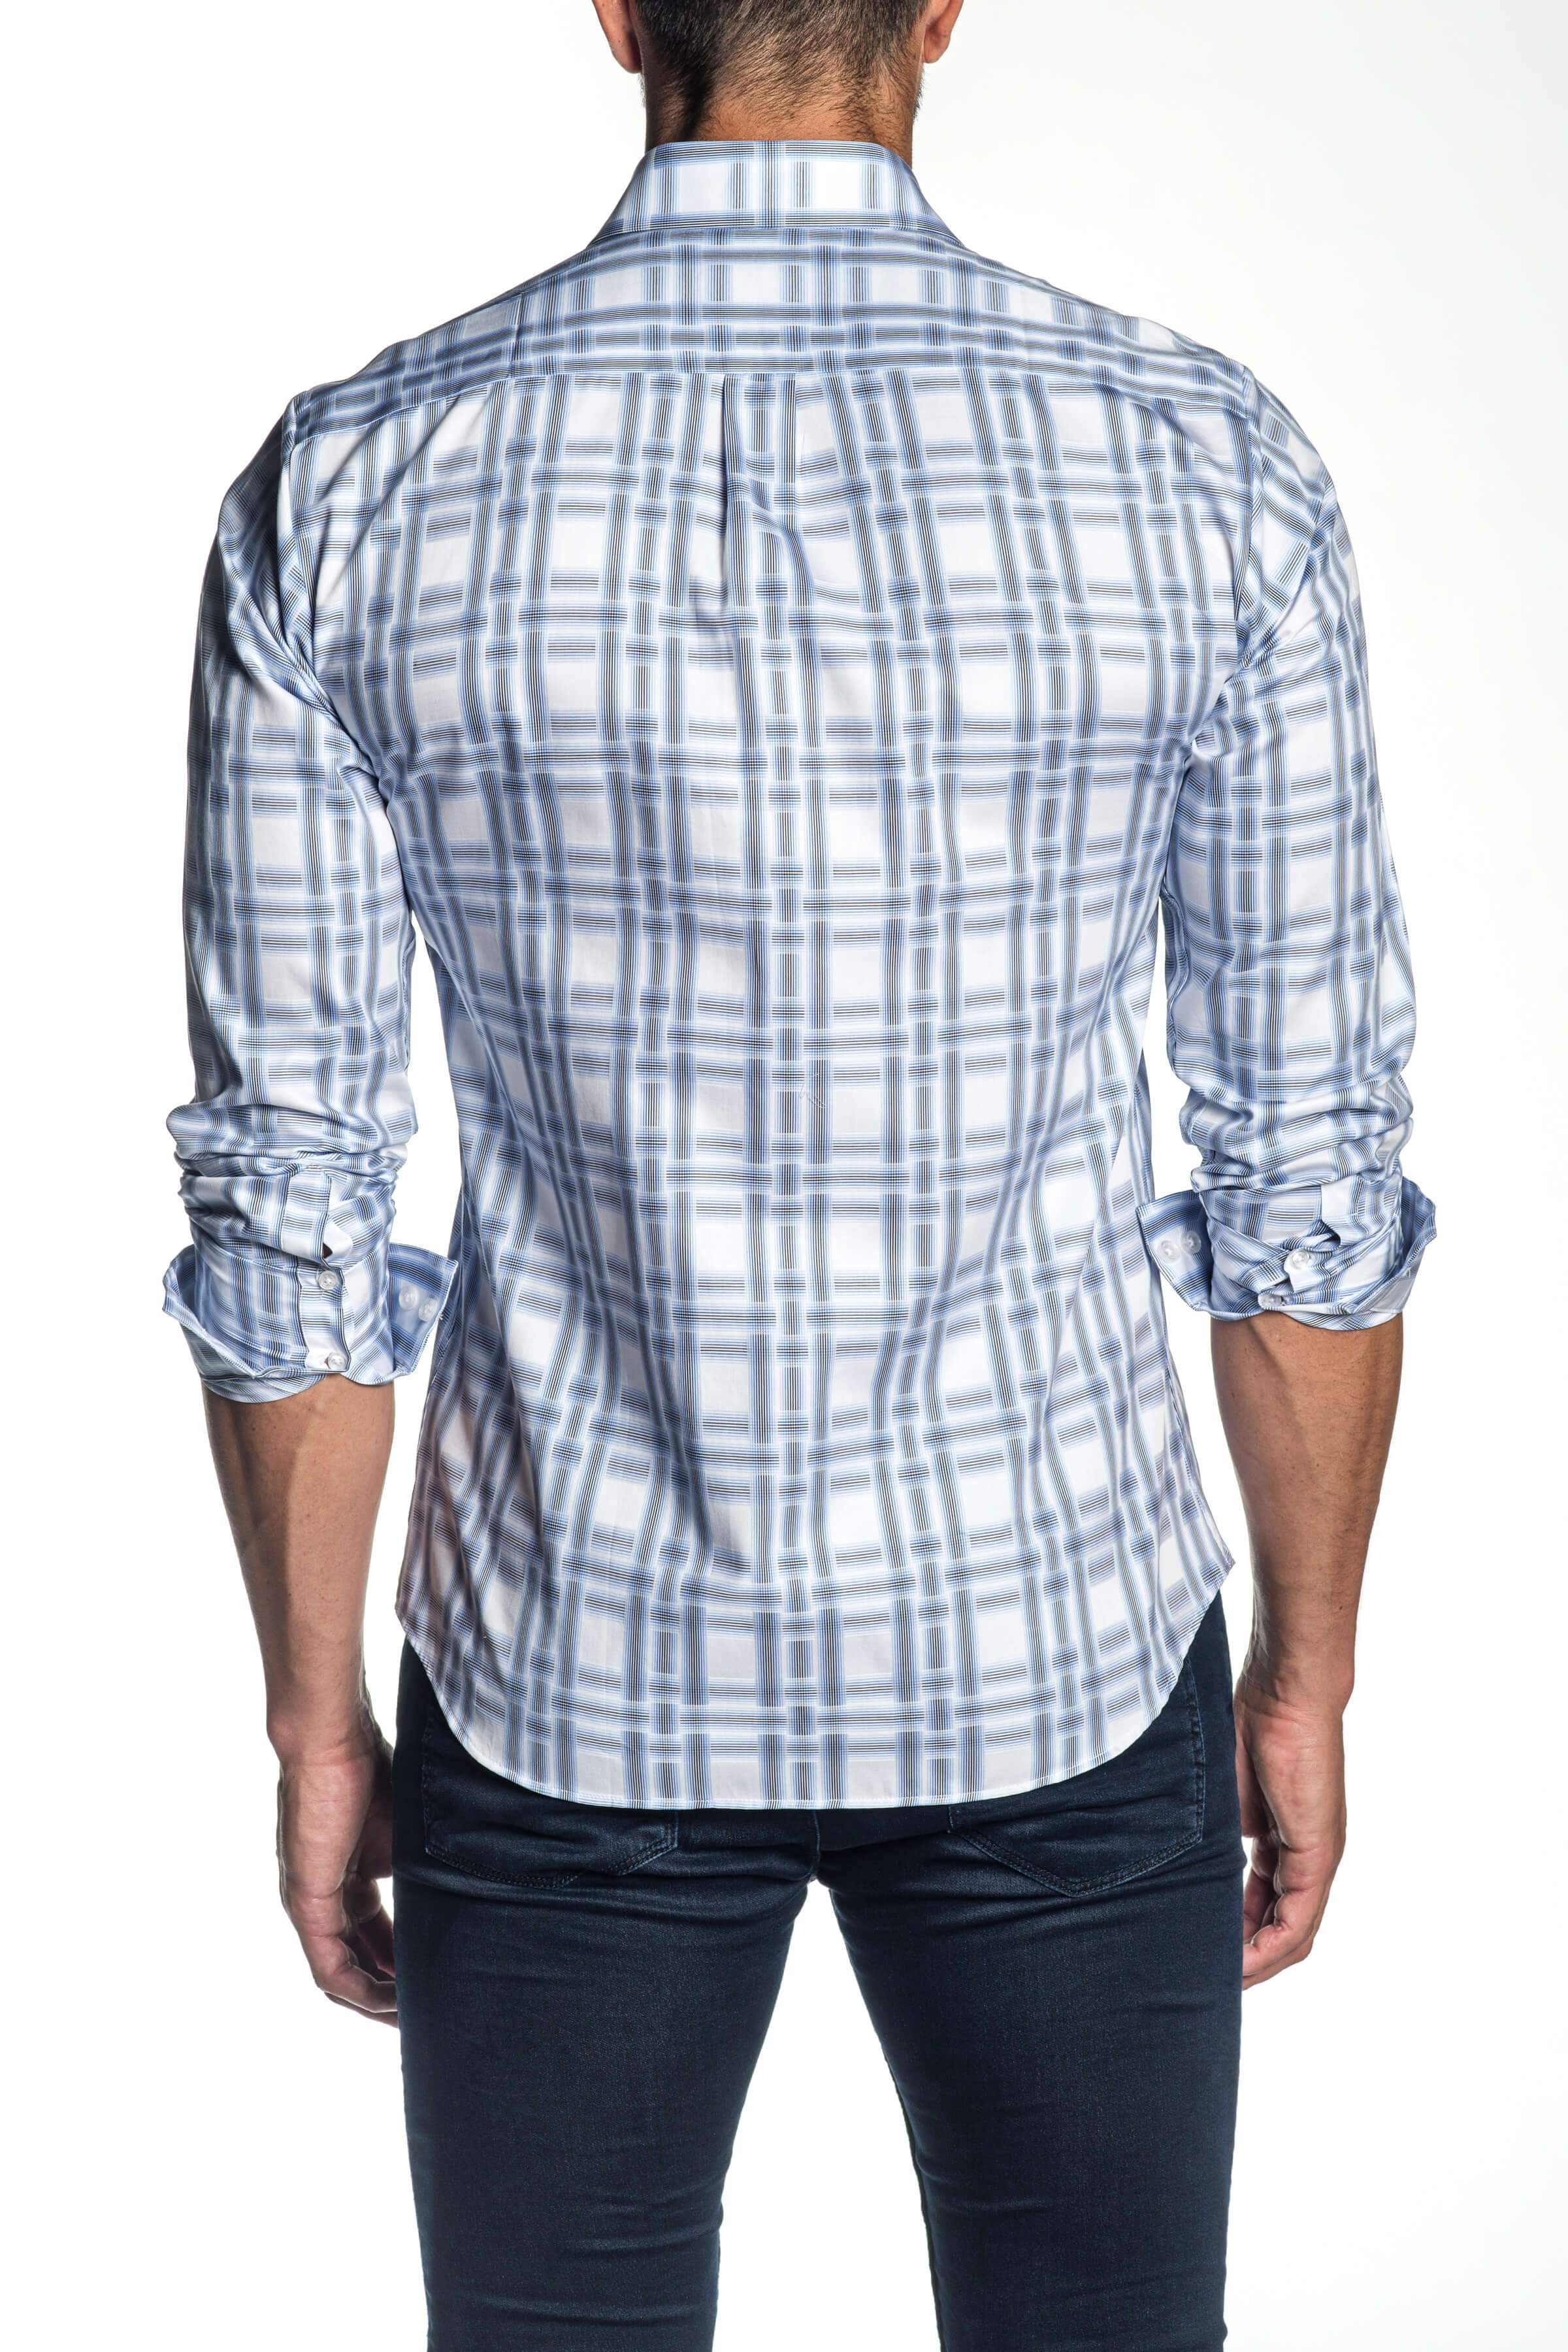 White and Blue Plaid Shirt for Men AH-ITA-T-9007